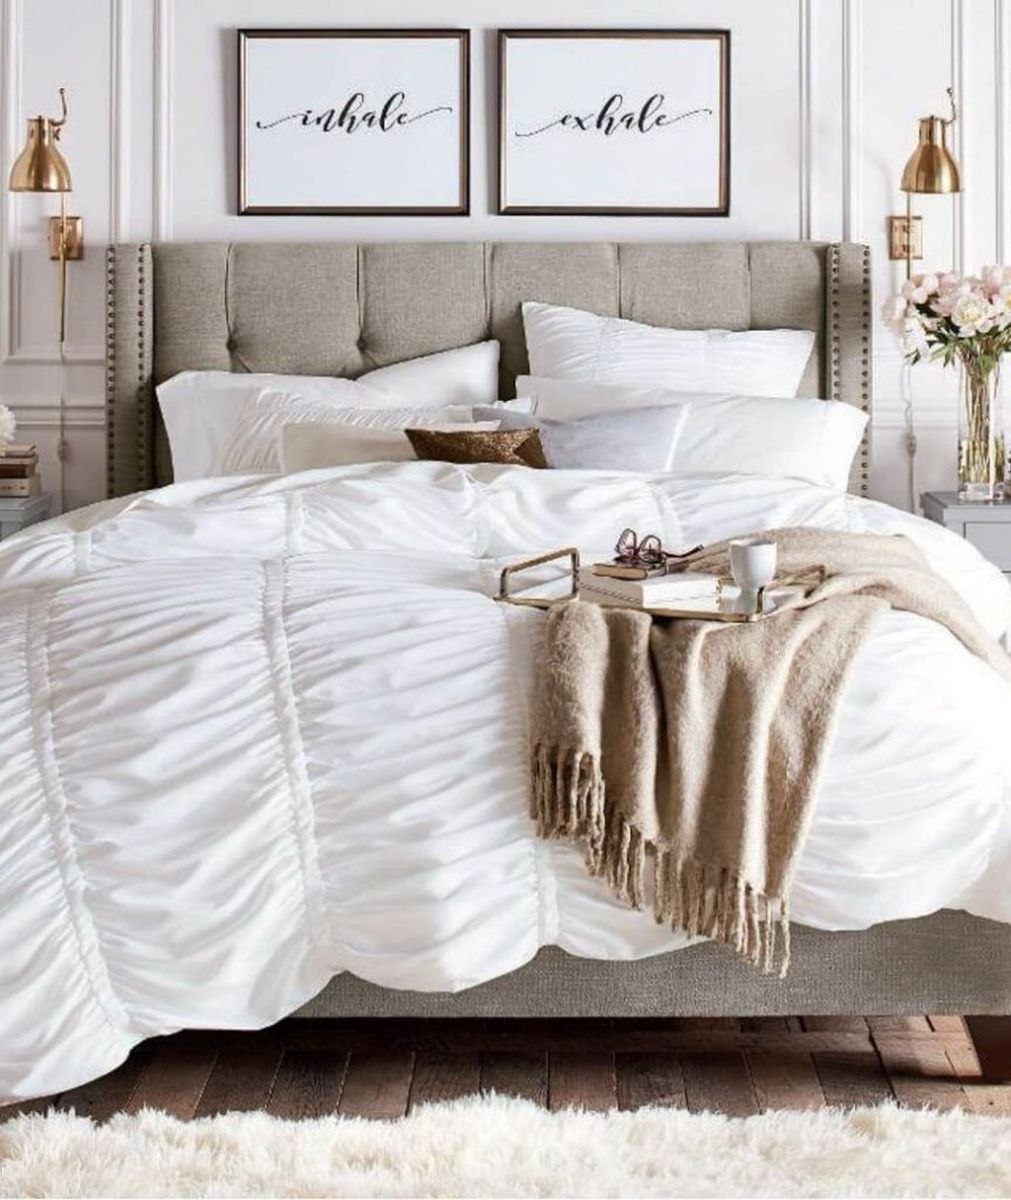 Fascinating Summer Bedroom Decor Ideas 32